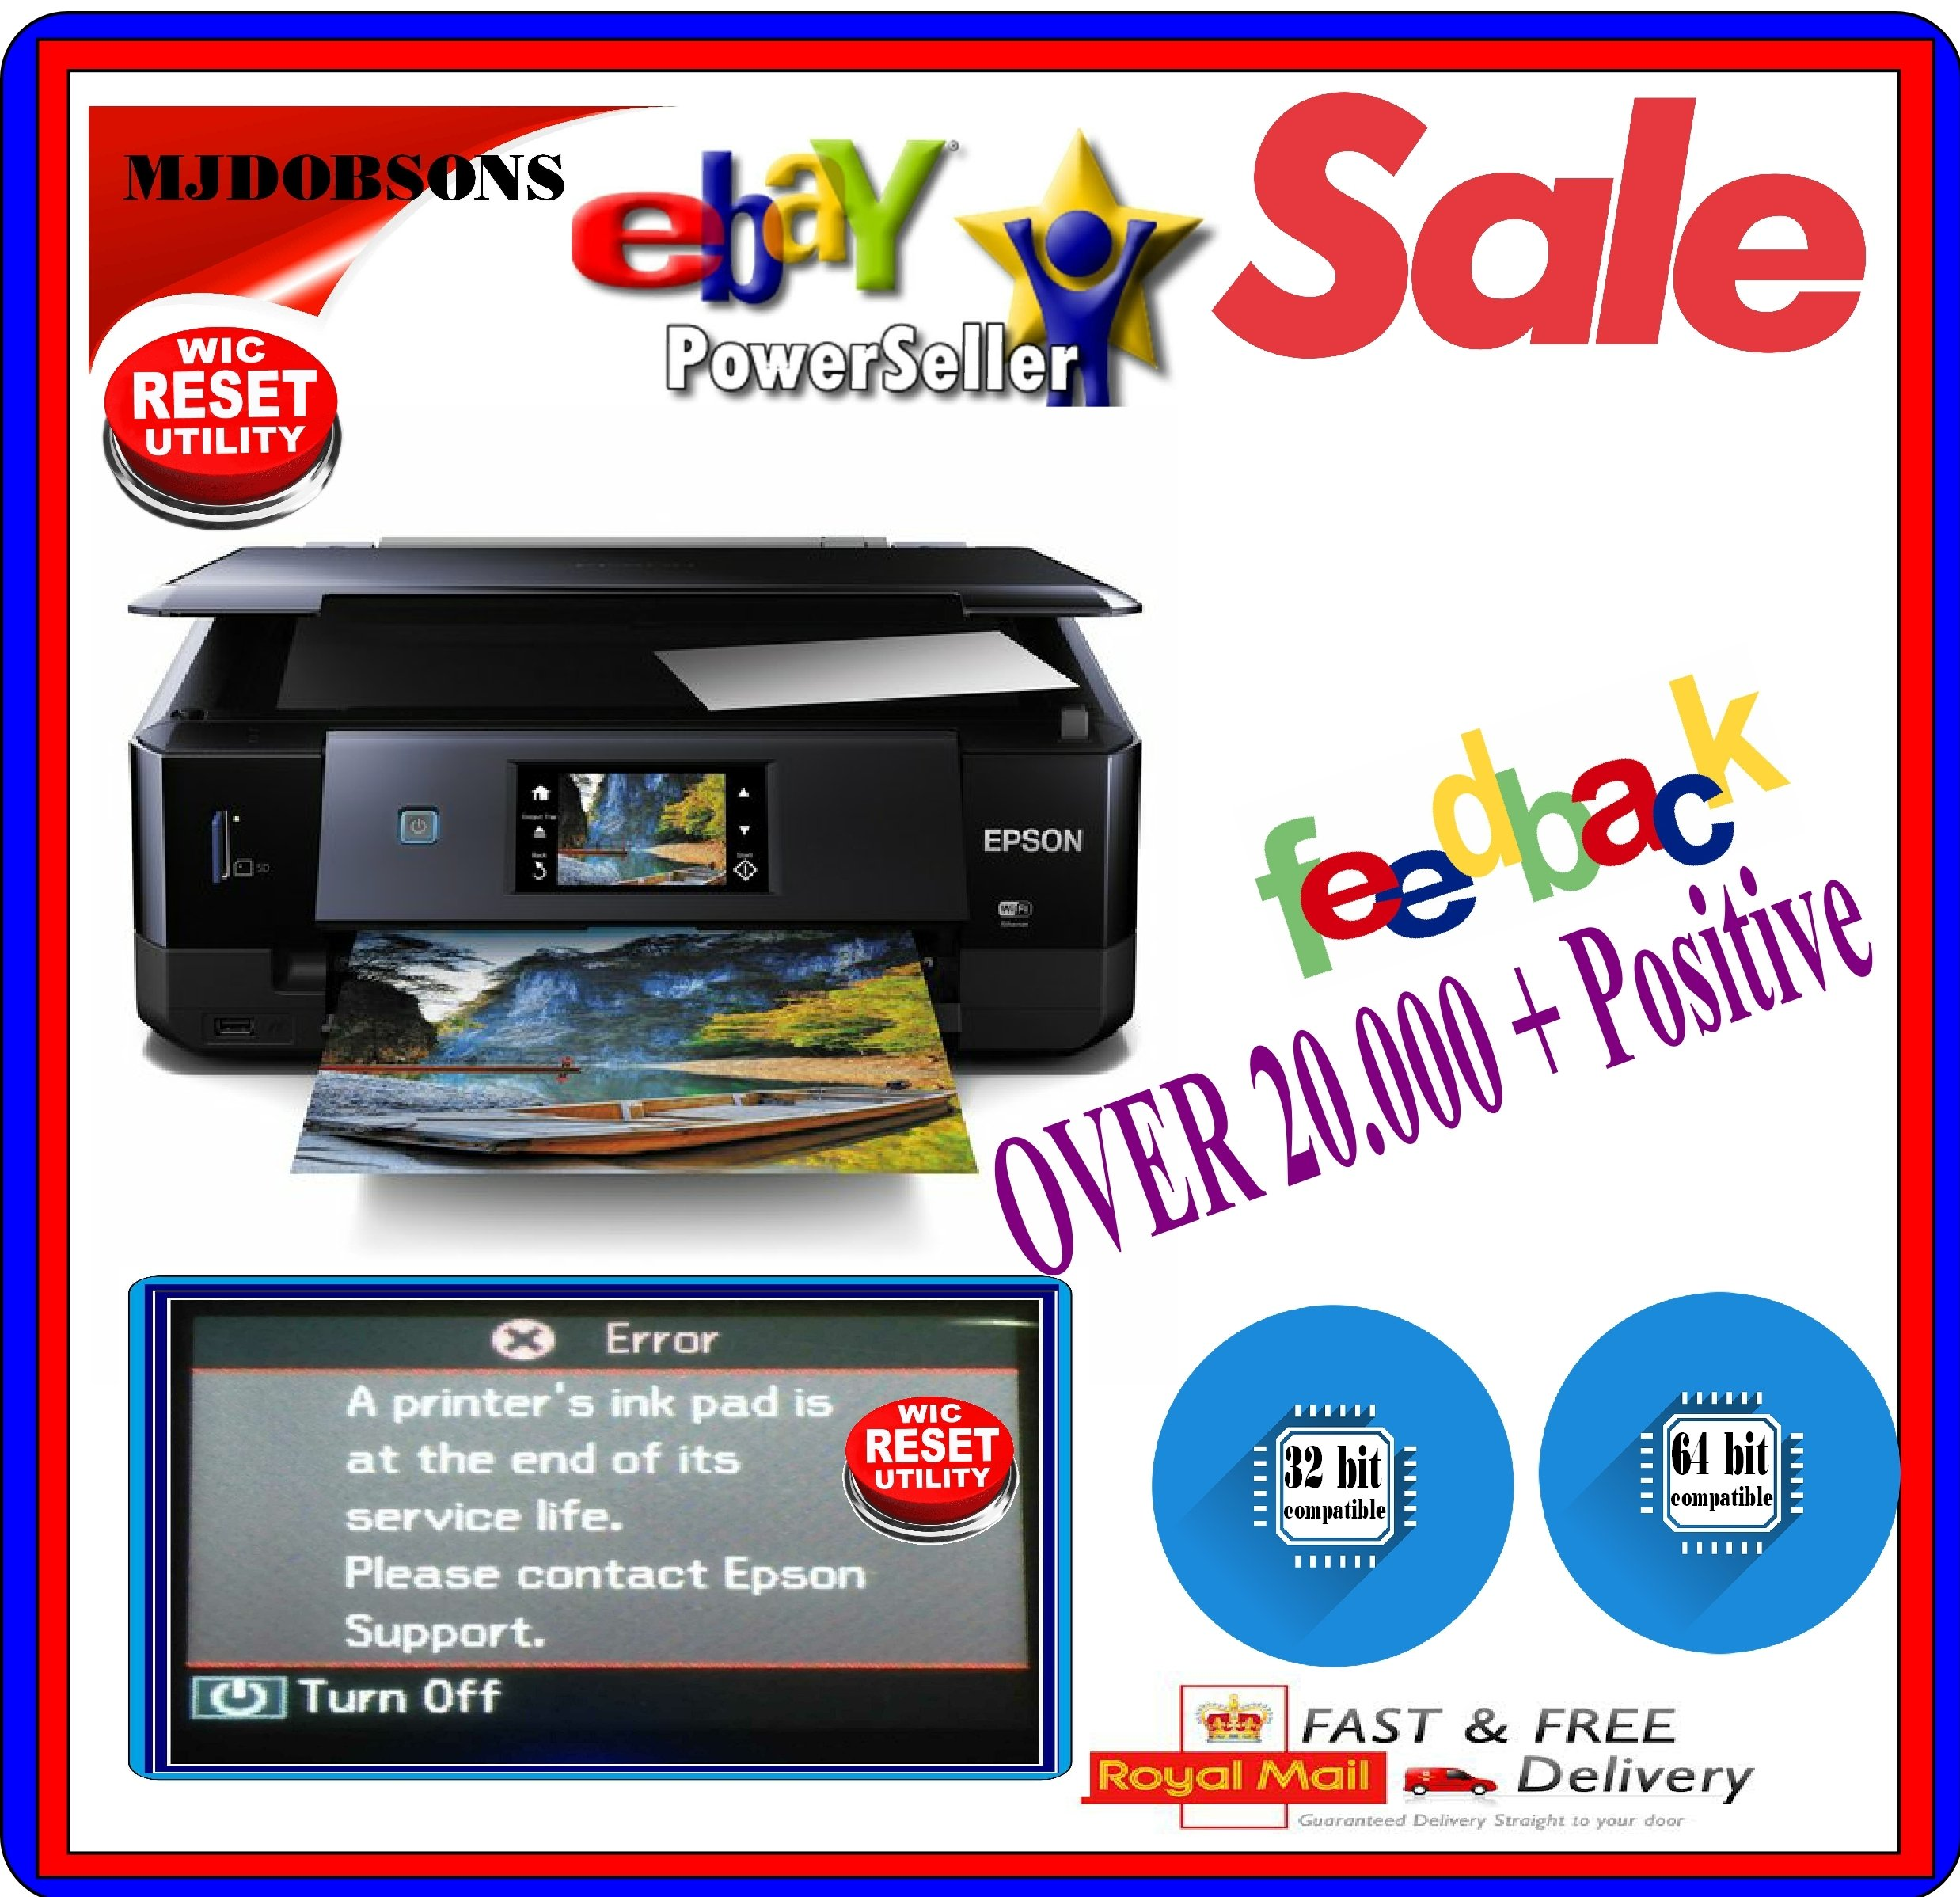 Details about EPSON PRINTER RESET FOR EPSON WASTE  INK PADS SERVICE  ERROR  FAULT KEY DOWNLOAD